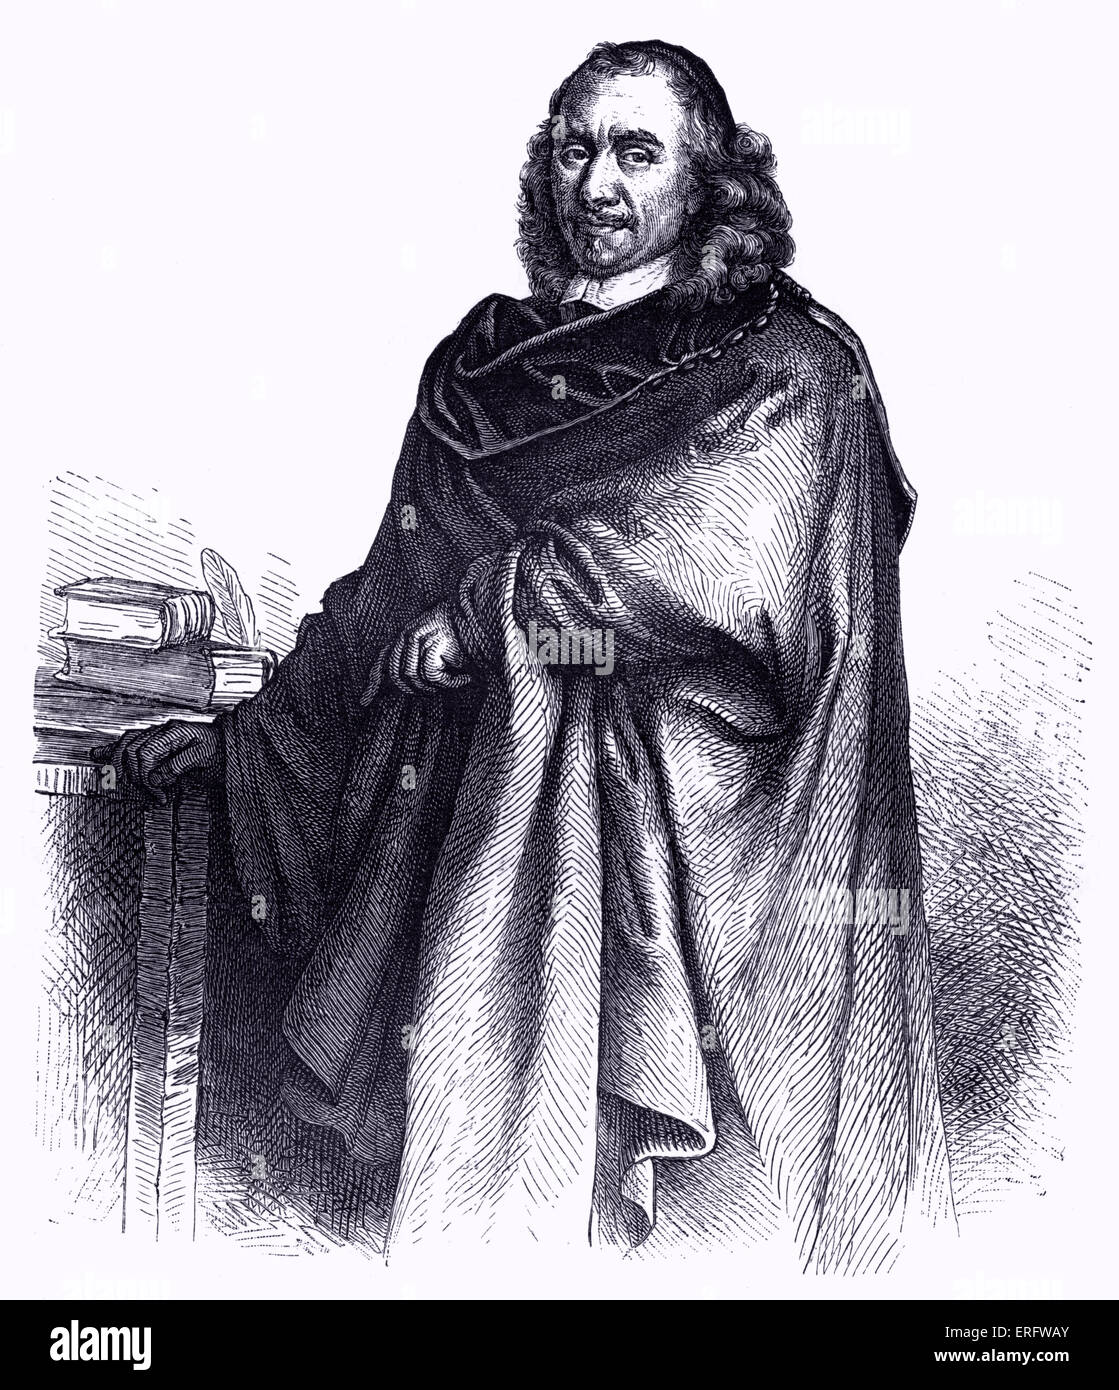 Pierre Corneille, French playwright and poet. He wrote Mélite, Médée, Cid and many more plays.   - Stock Image